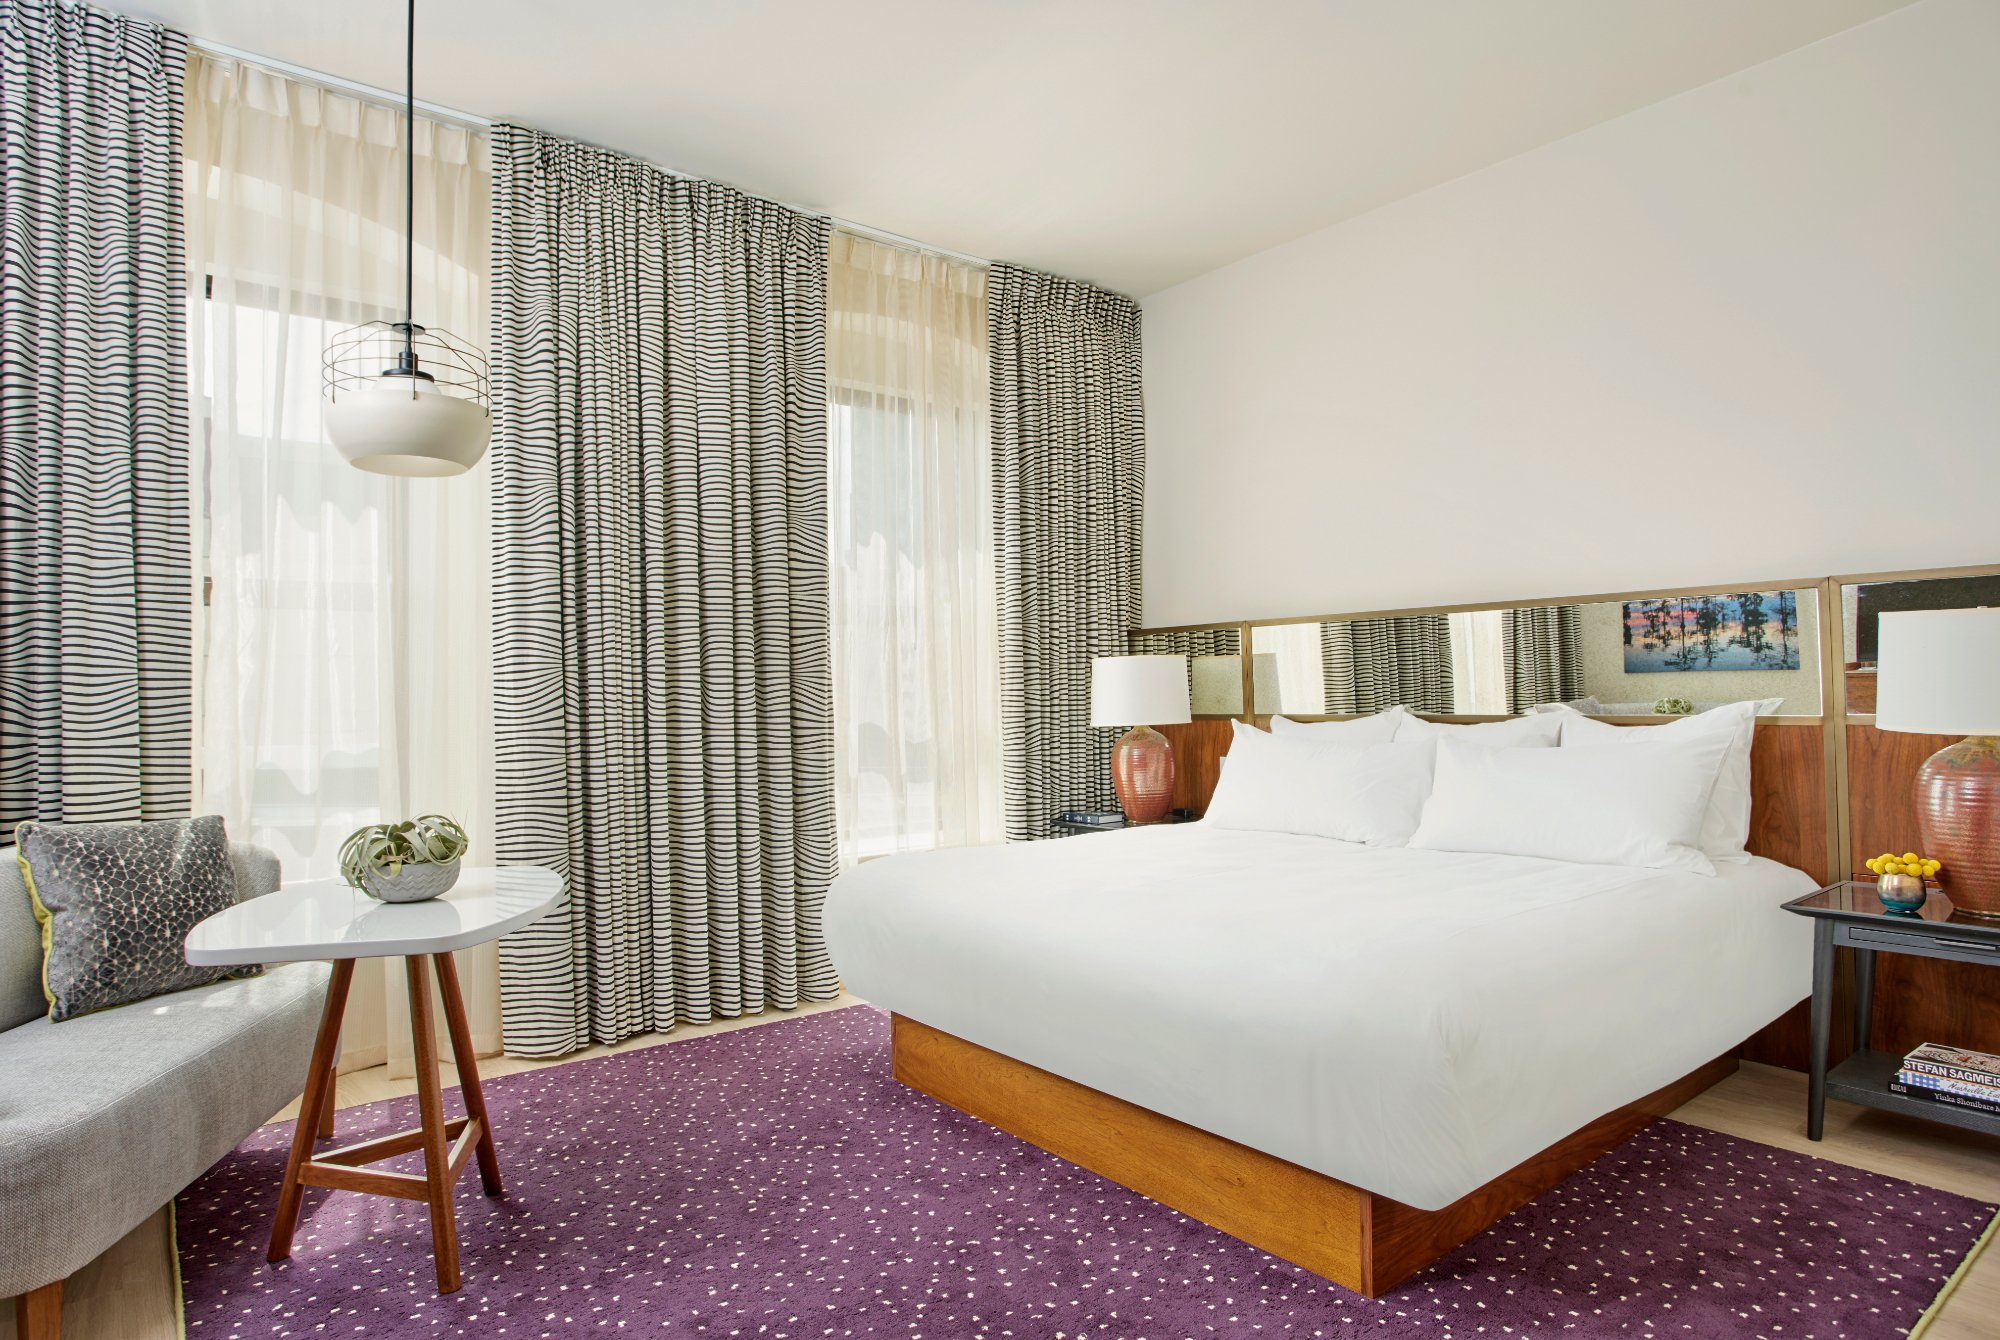 Nashville Hotels With 2 Bedroom Suites The 10 Closest Hotels To Country Music Hall Of Fame And Museum